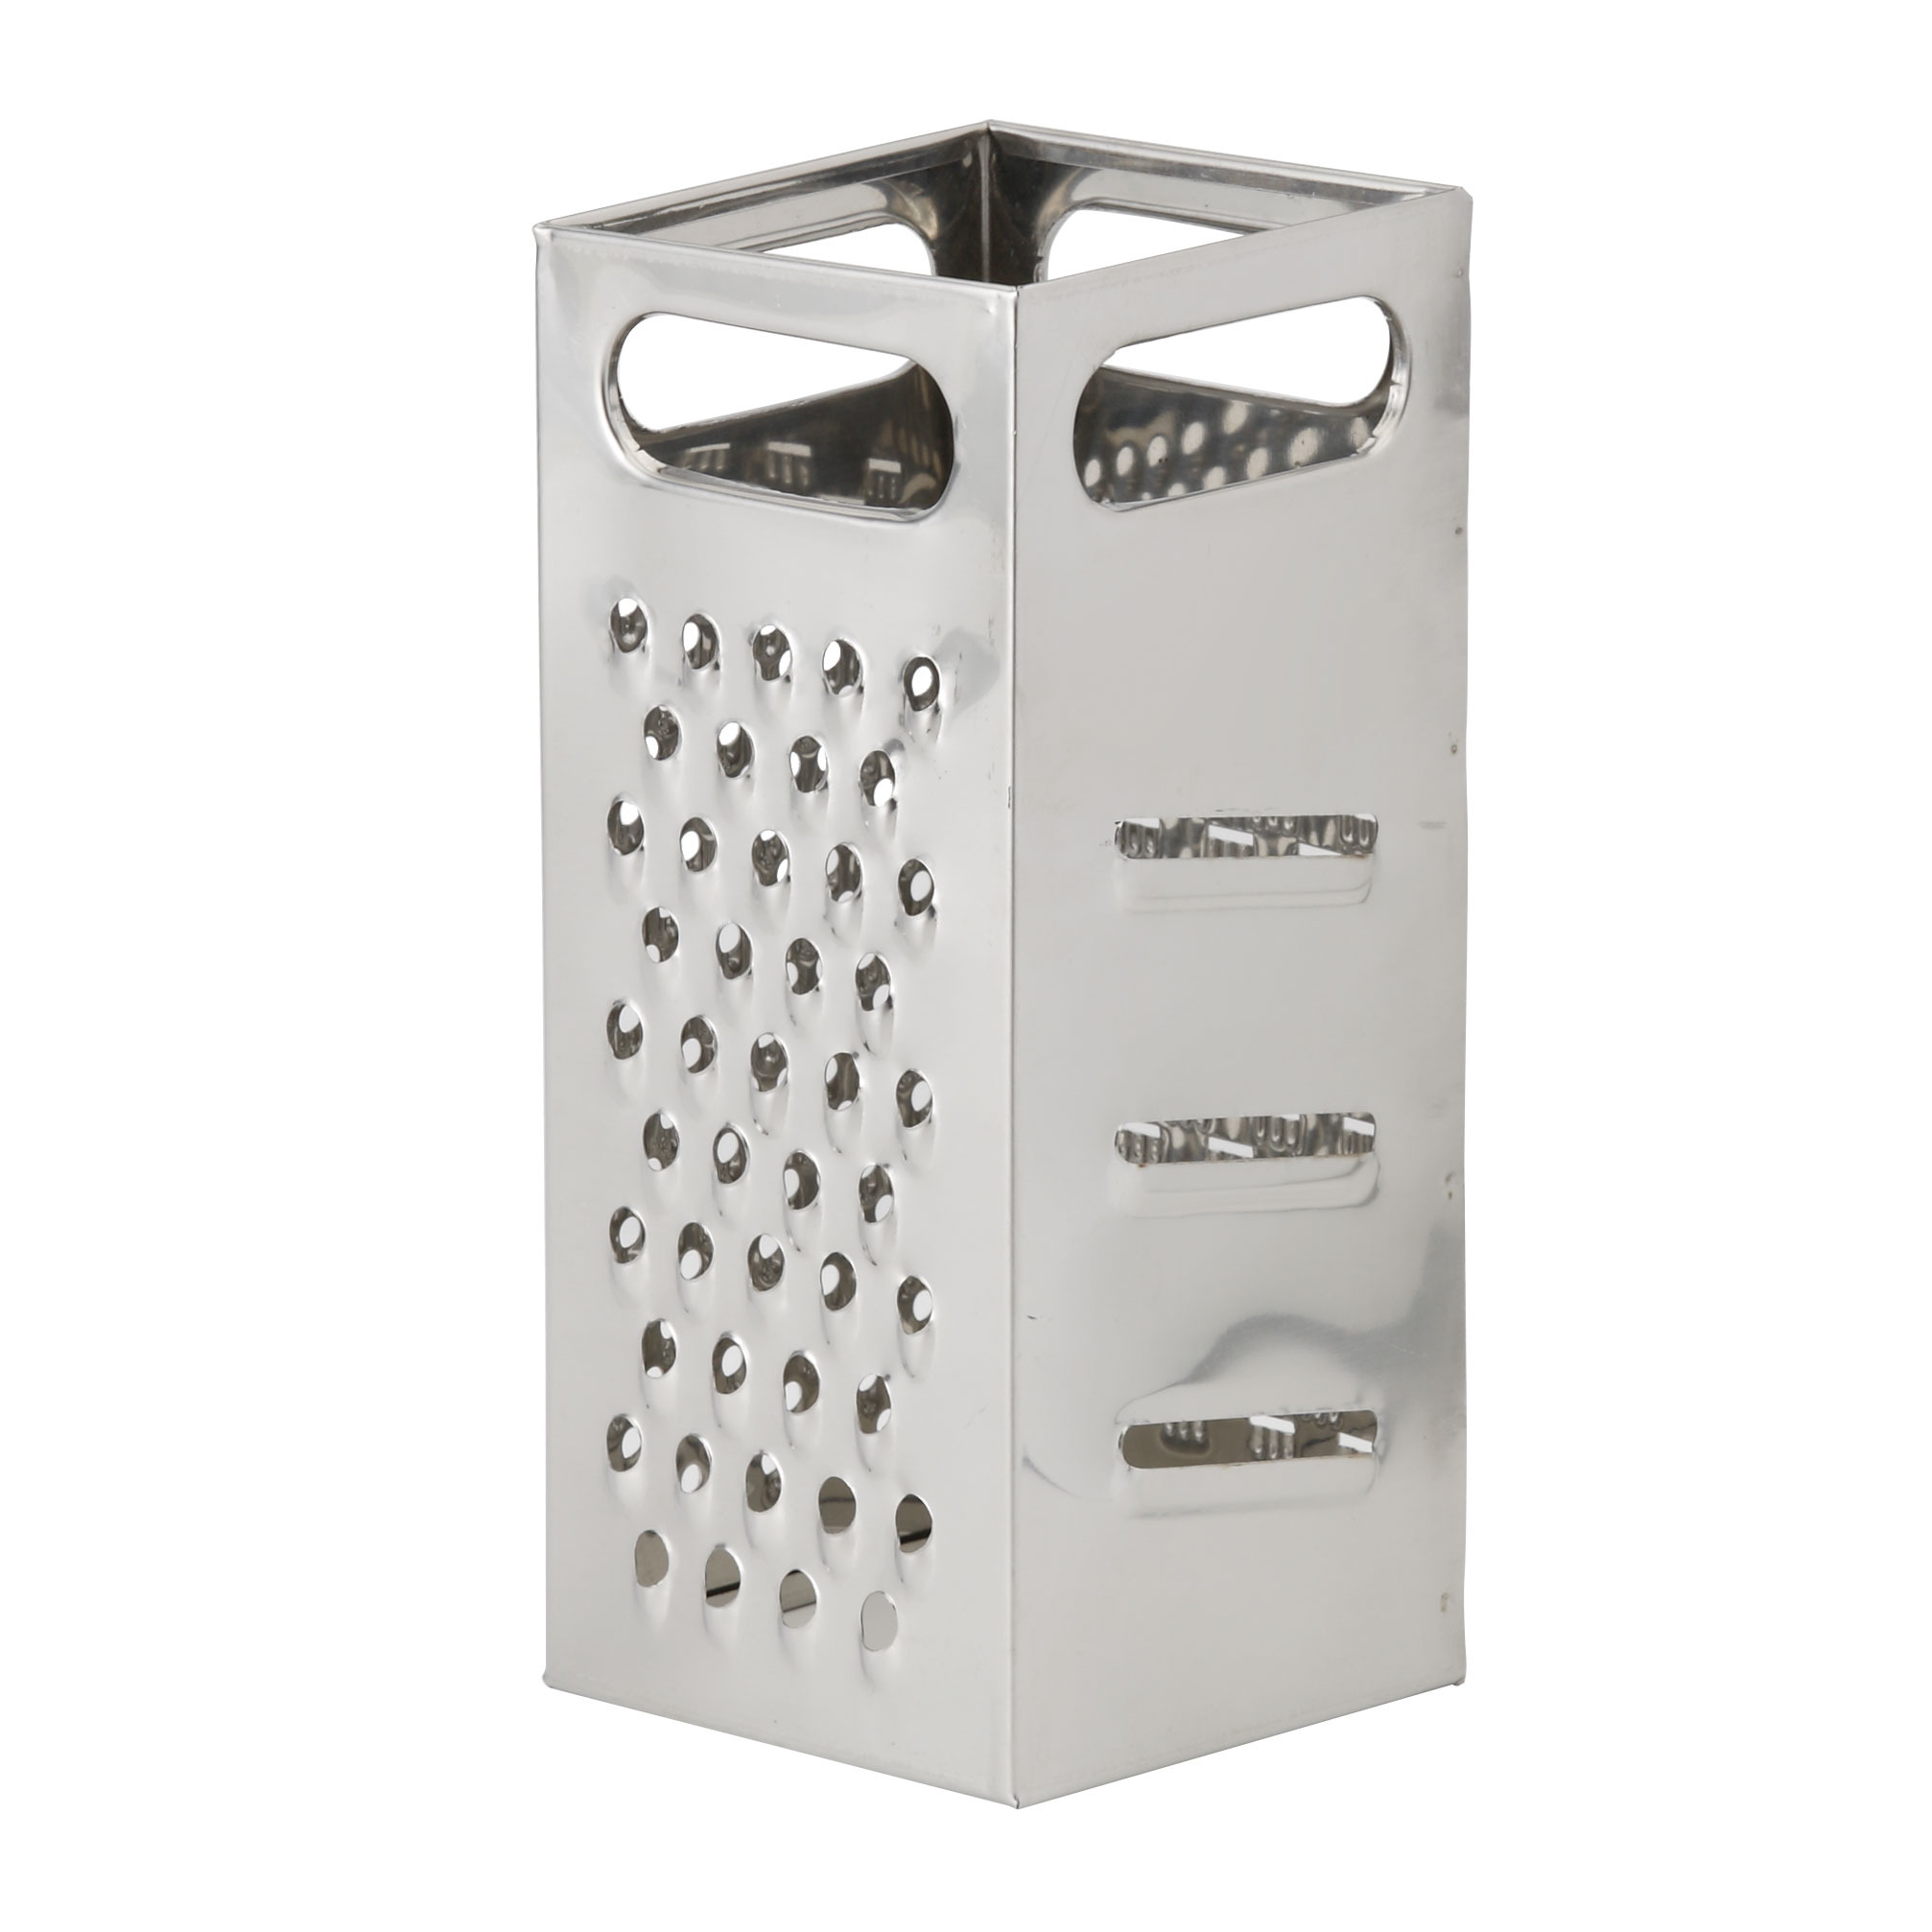 Royal Industries ROY GR 4 grater, box